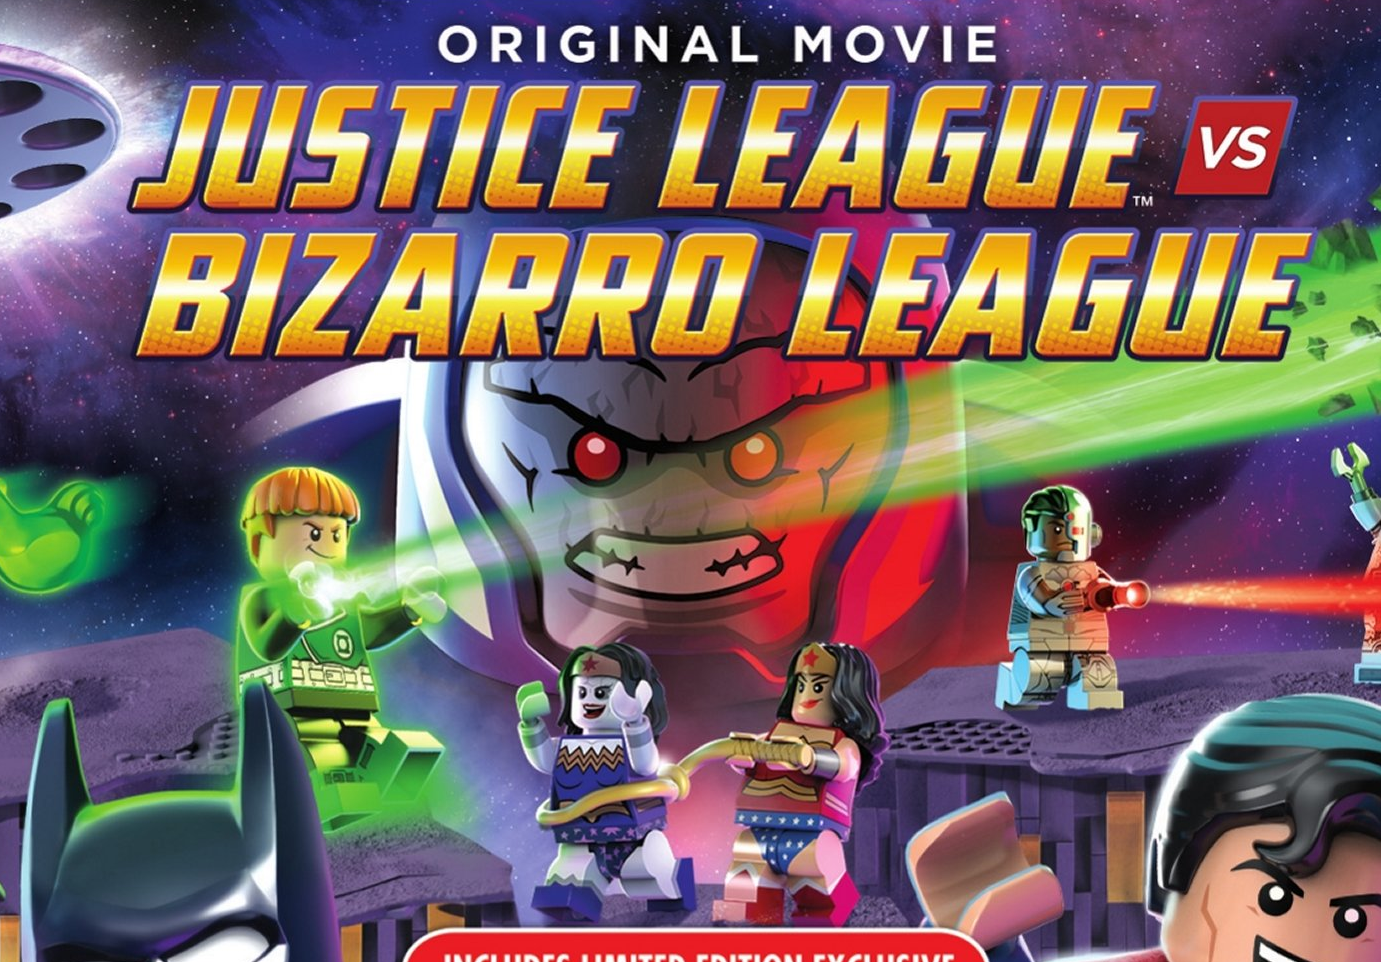 Justice League vs. Bizarro League: First Look